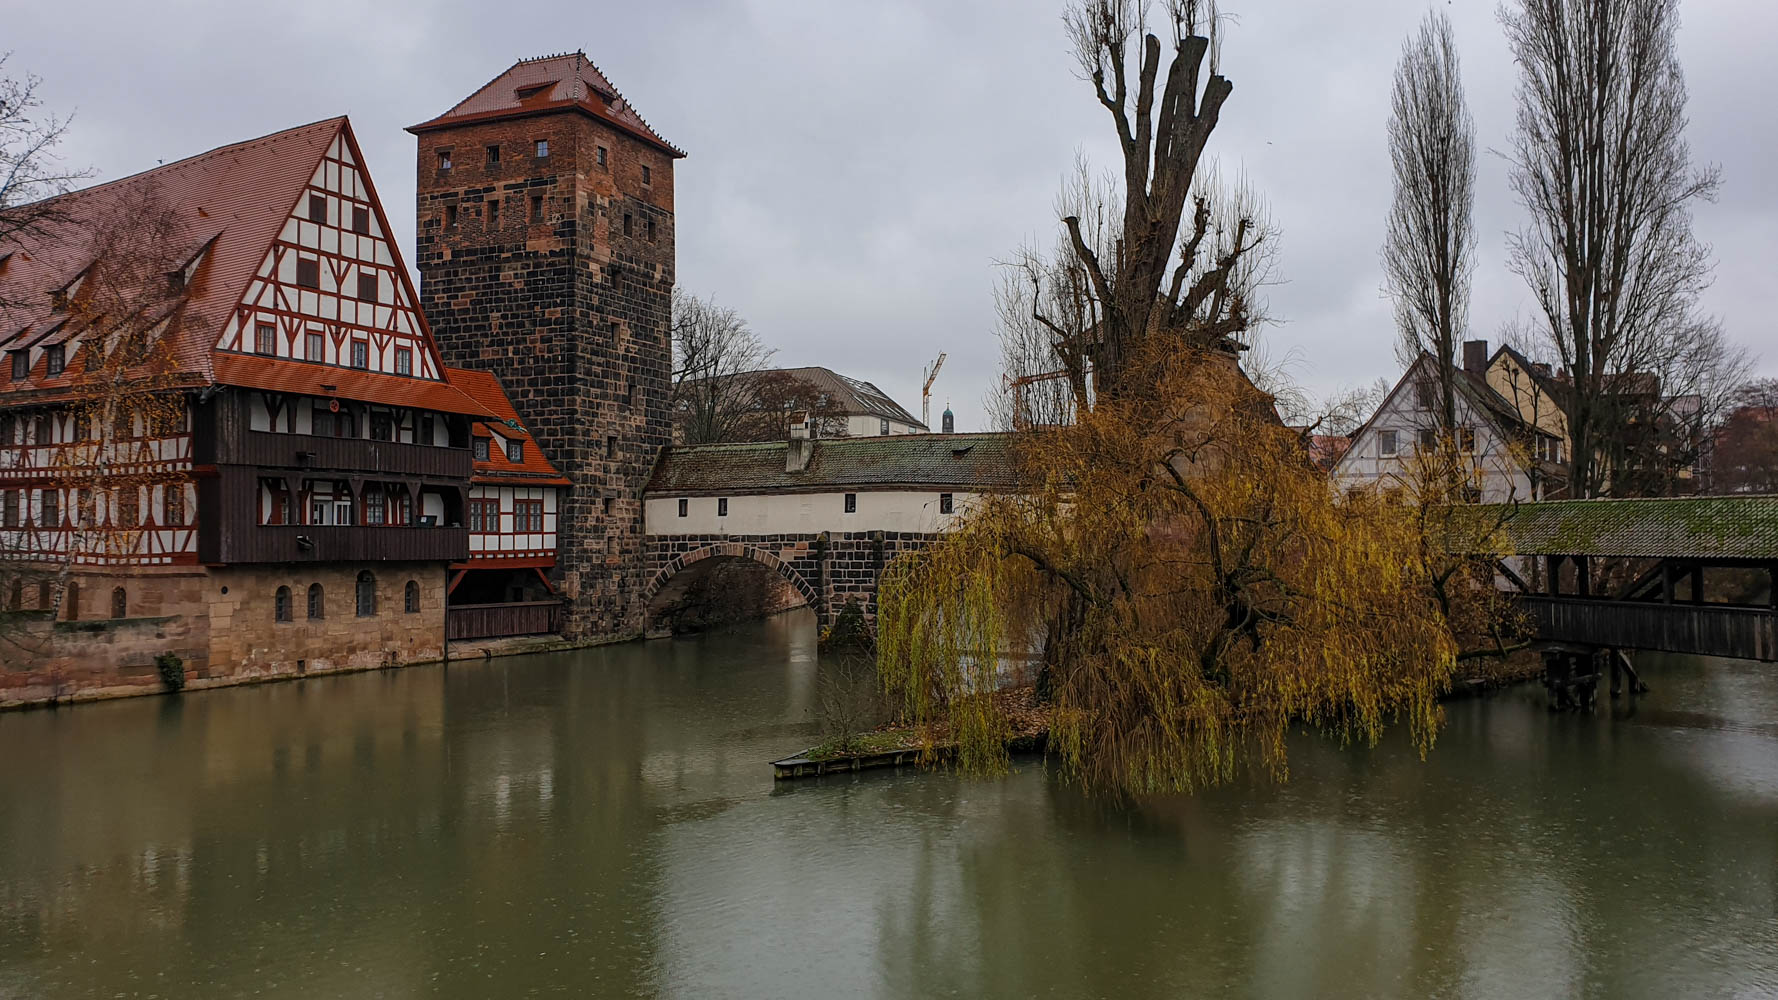 View of a bridge and a couple of red brick buildings with some willow trees in the foregrownd on a cloudy day